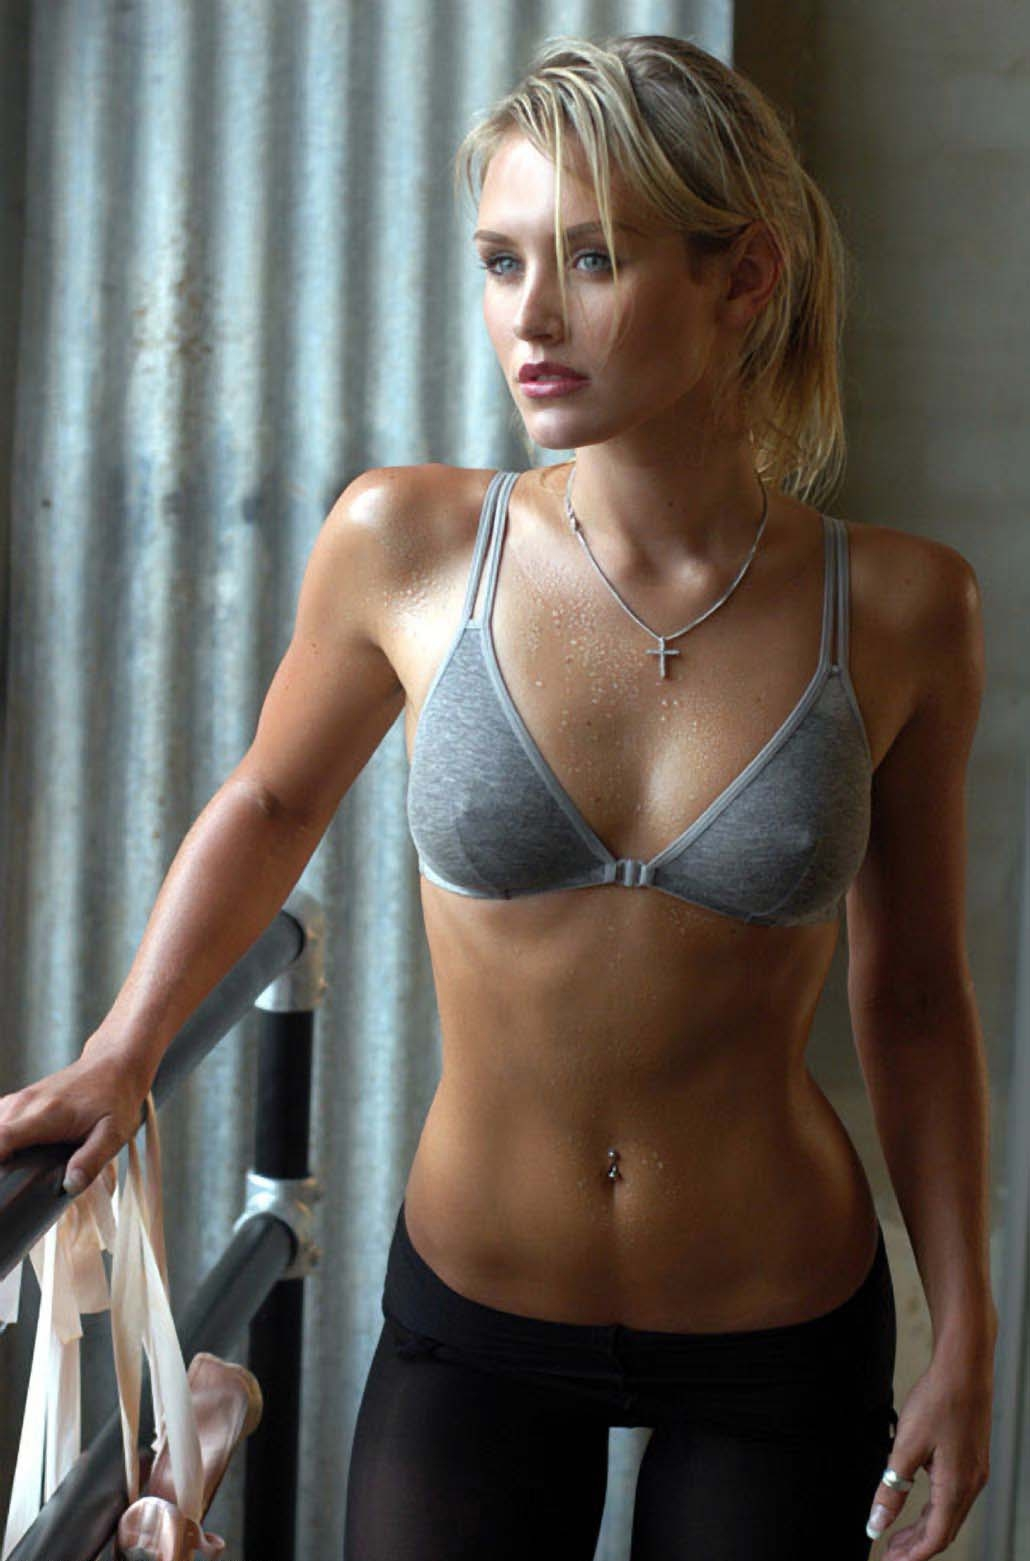 Gallery images and information nicky whelan hall pass gif - Nicky Whelan 16 Jpg